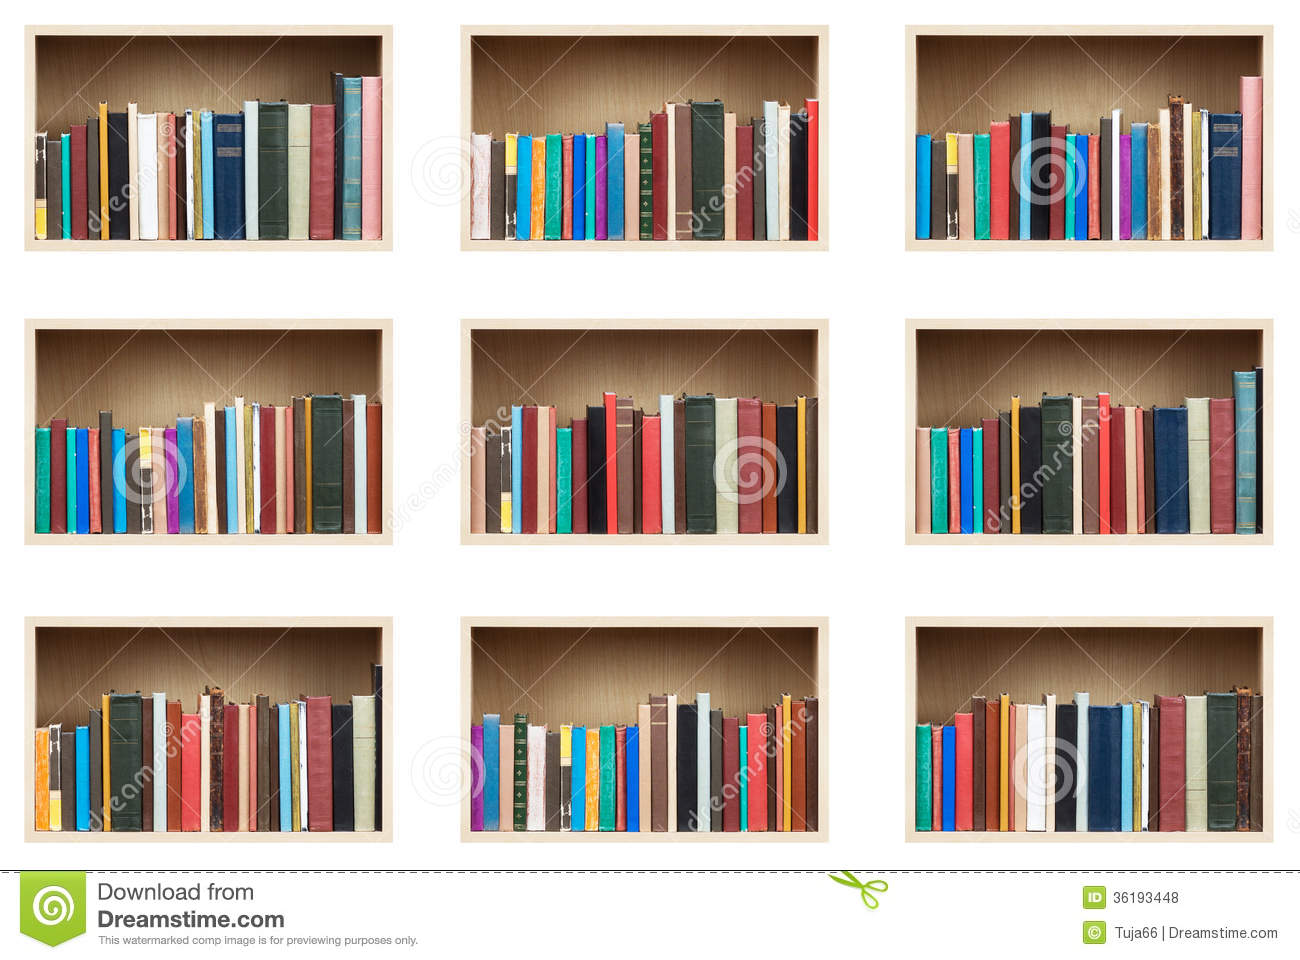 Books stock photo. Image of book, aged, literary ...